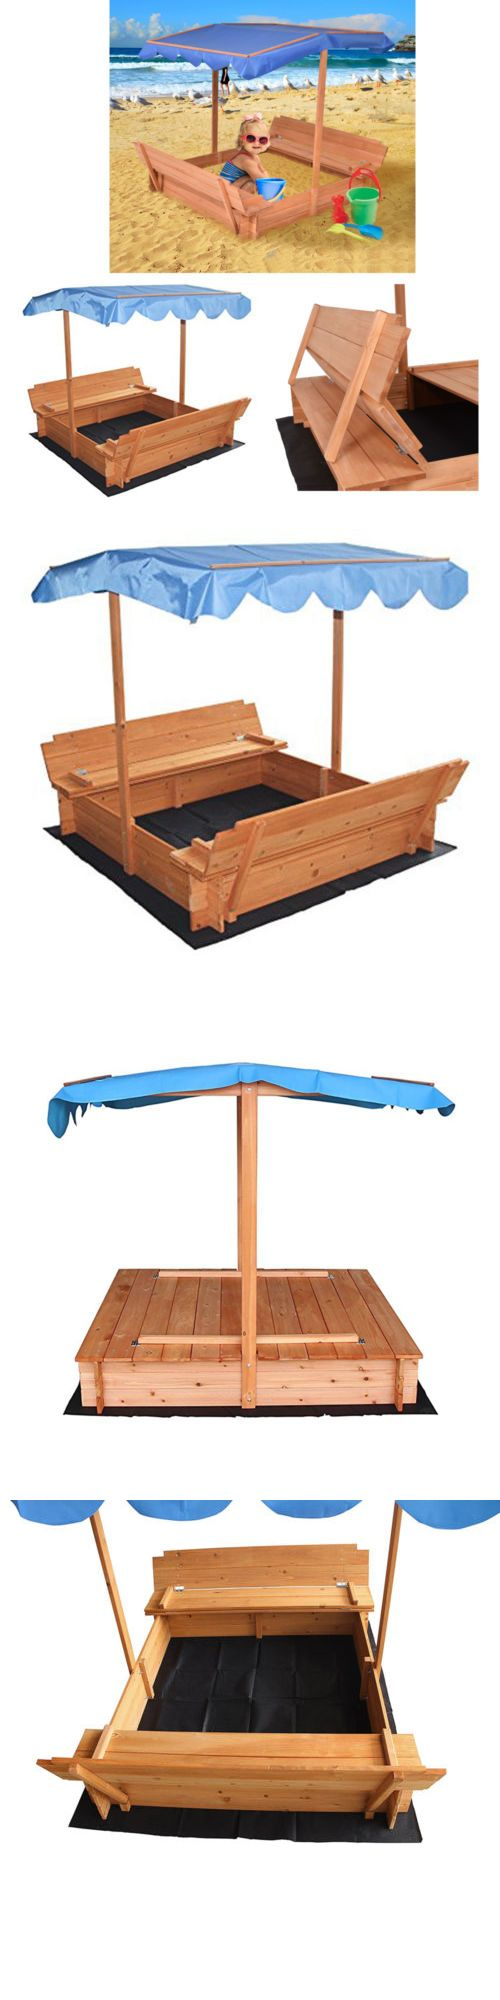 Sandbox Toys And Sandboxes 145990: Sandbox With Canopy And Two Bench Seats  For 3 To. Kids SandboxSandbox CoverRetractable ...